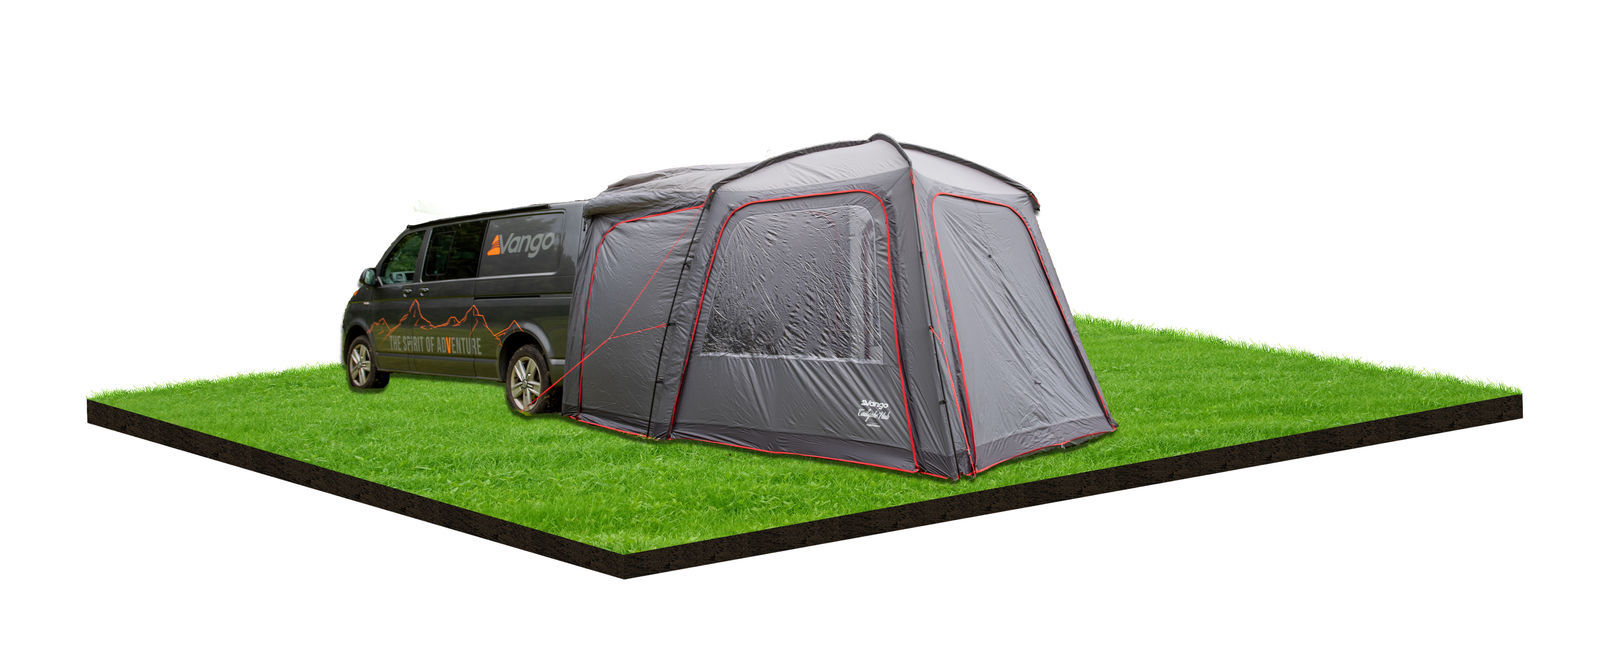 Vango Tailgate Hub Low 2021 Norwich Camping 9